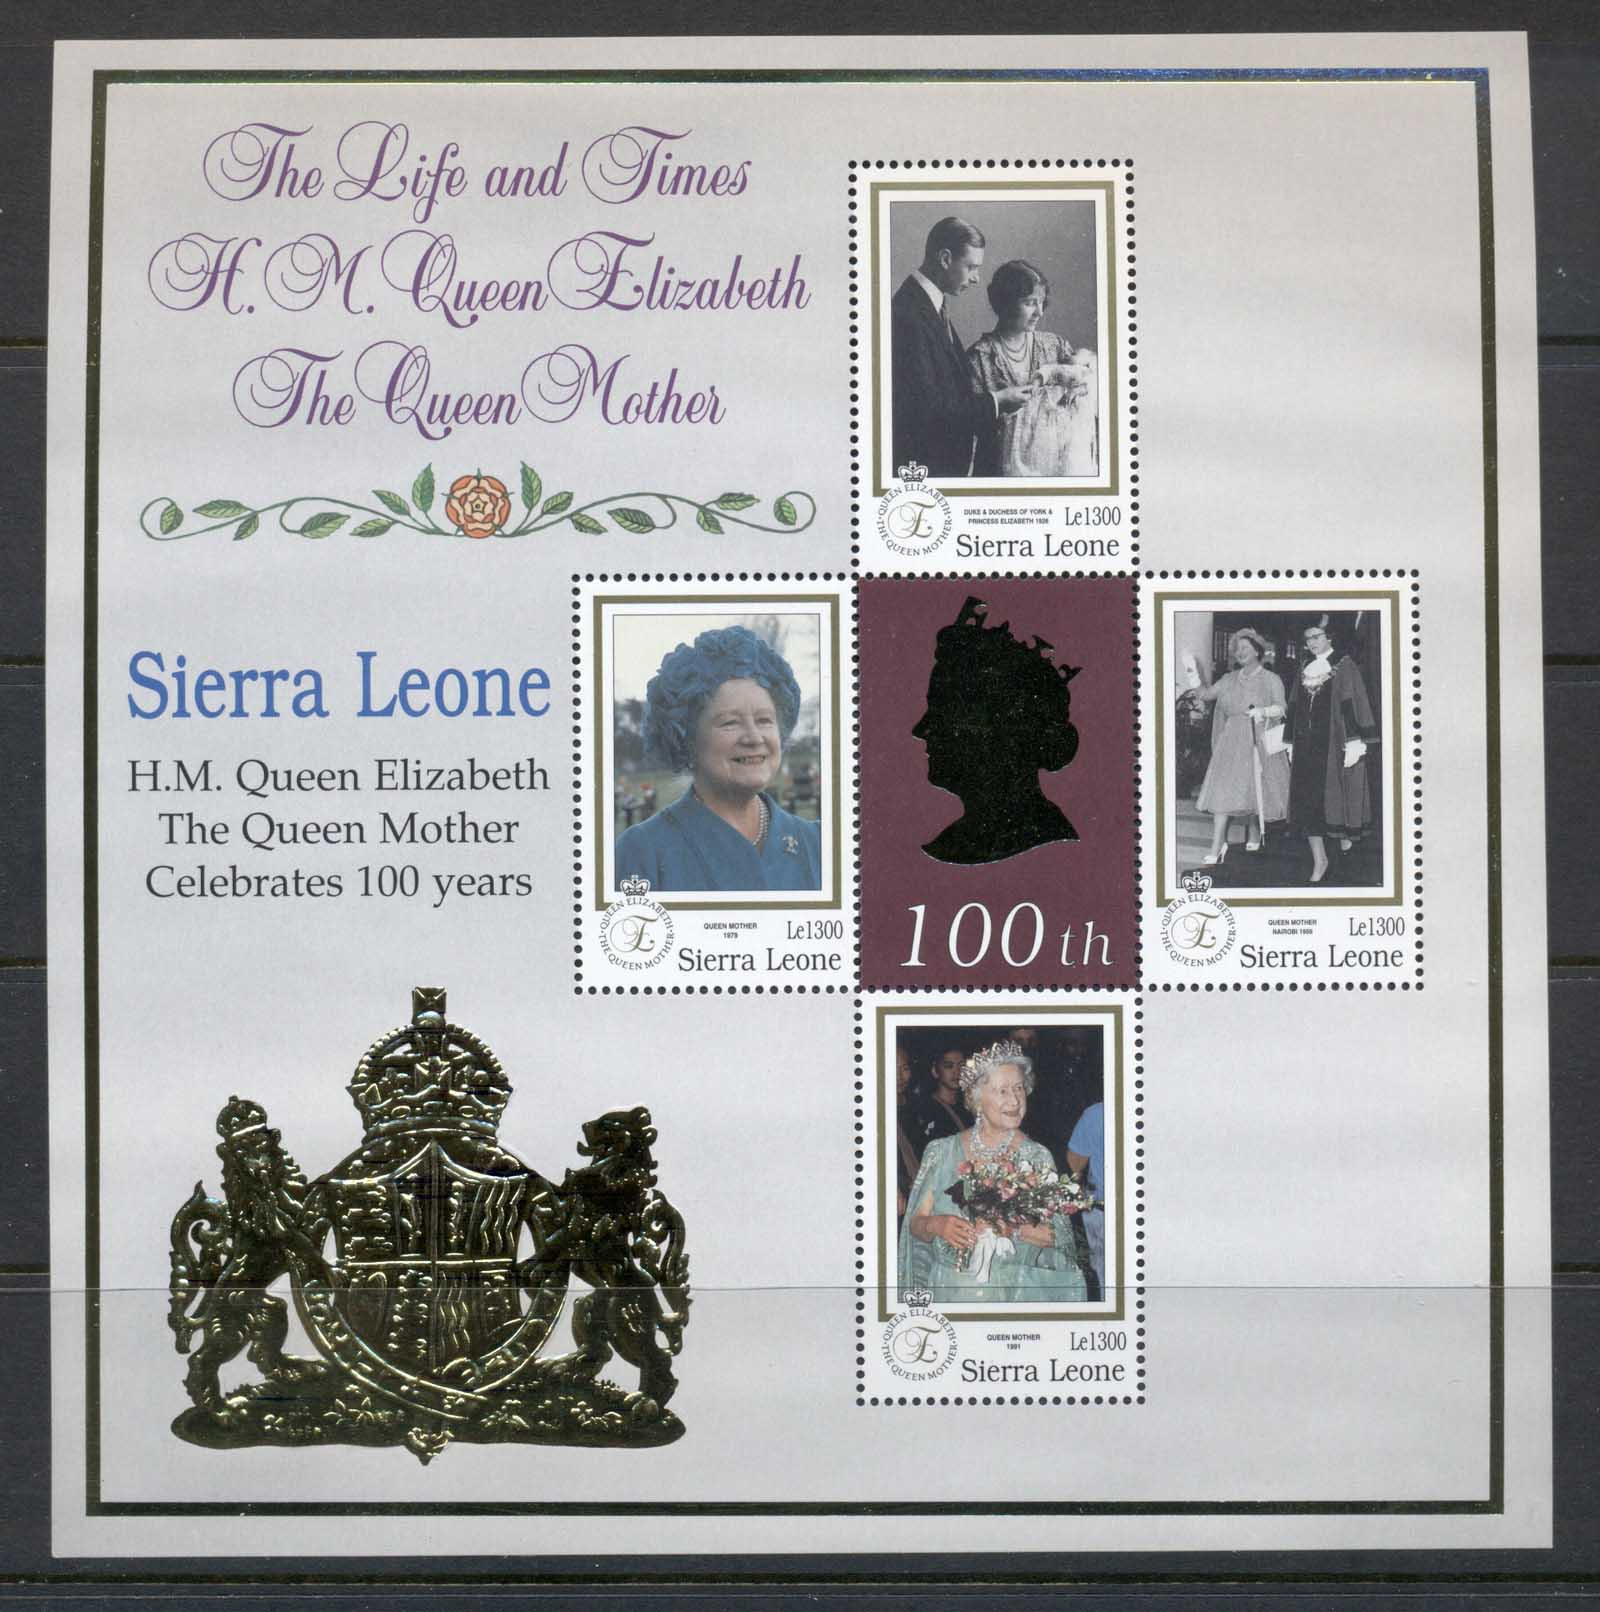 Sierra Leone 1999 Queen Mother 100th Birthday 1300l MS MUH